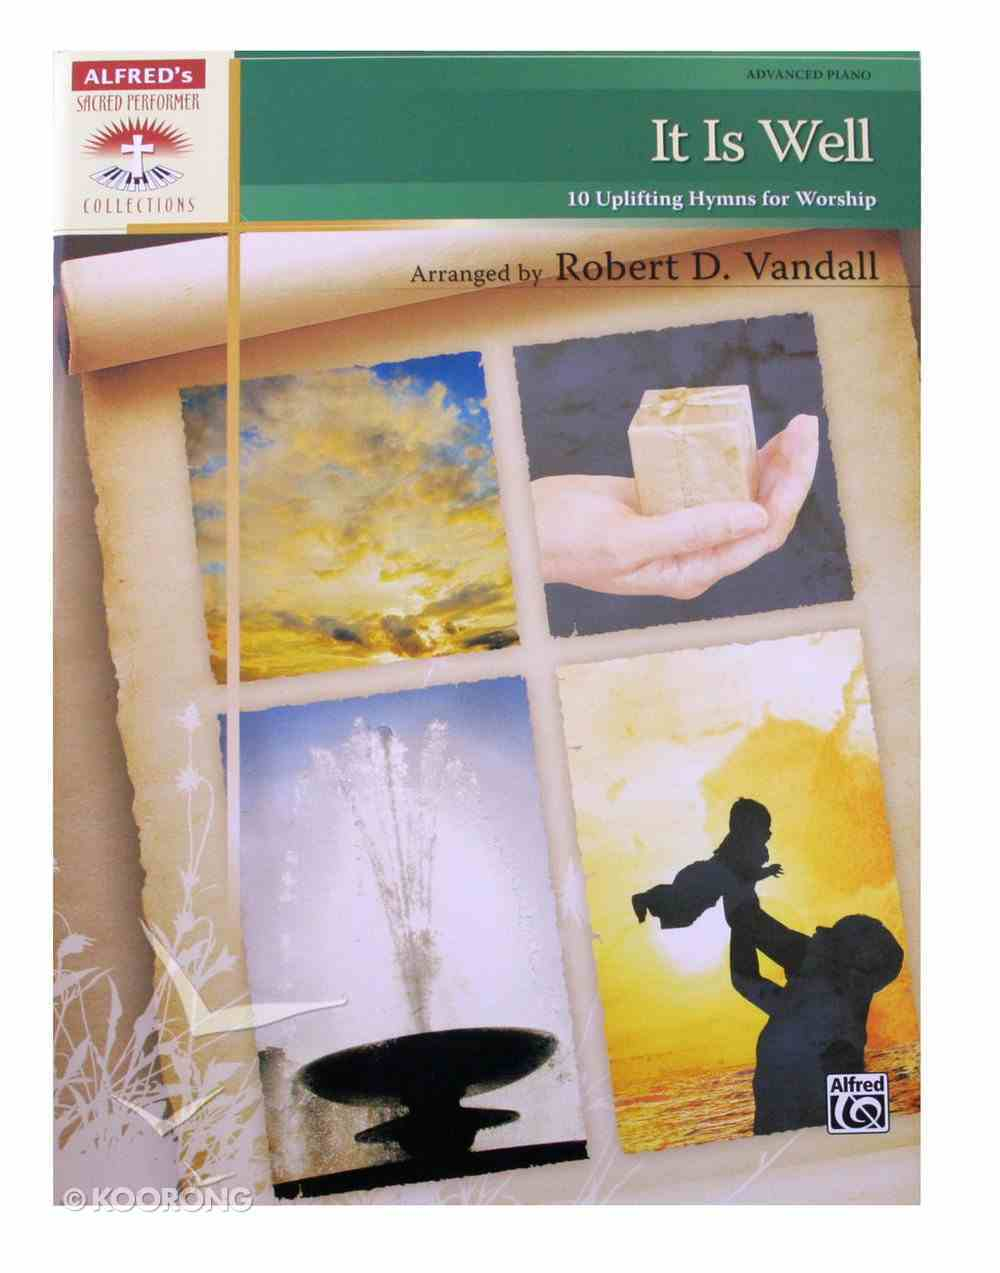 It is Well: 10 Uplifting Hymns For Worship (Music Book) Paperback